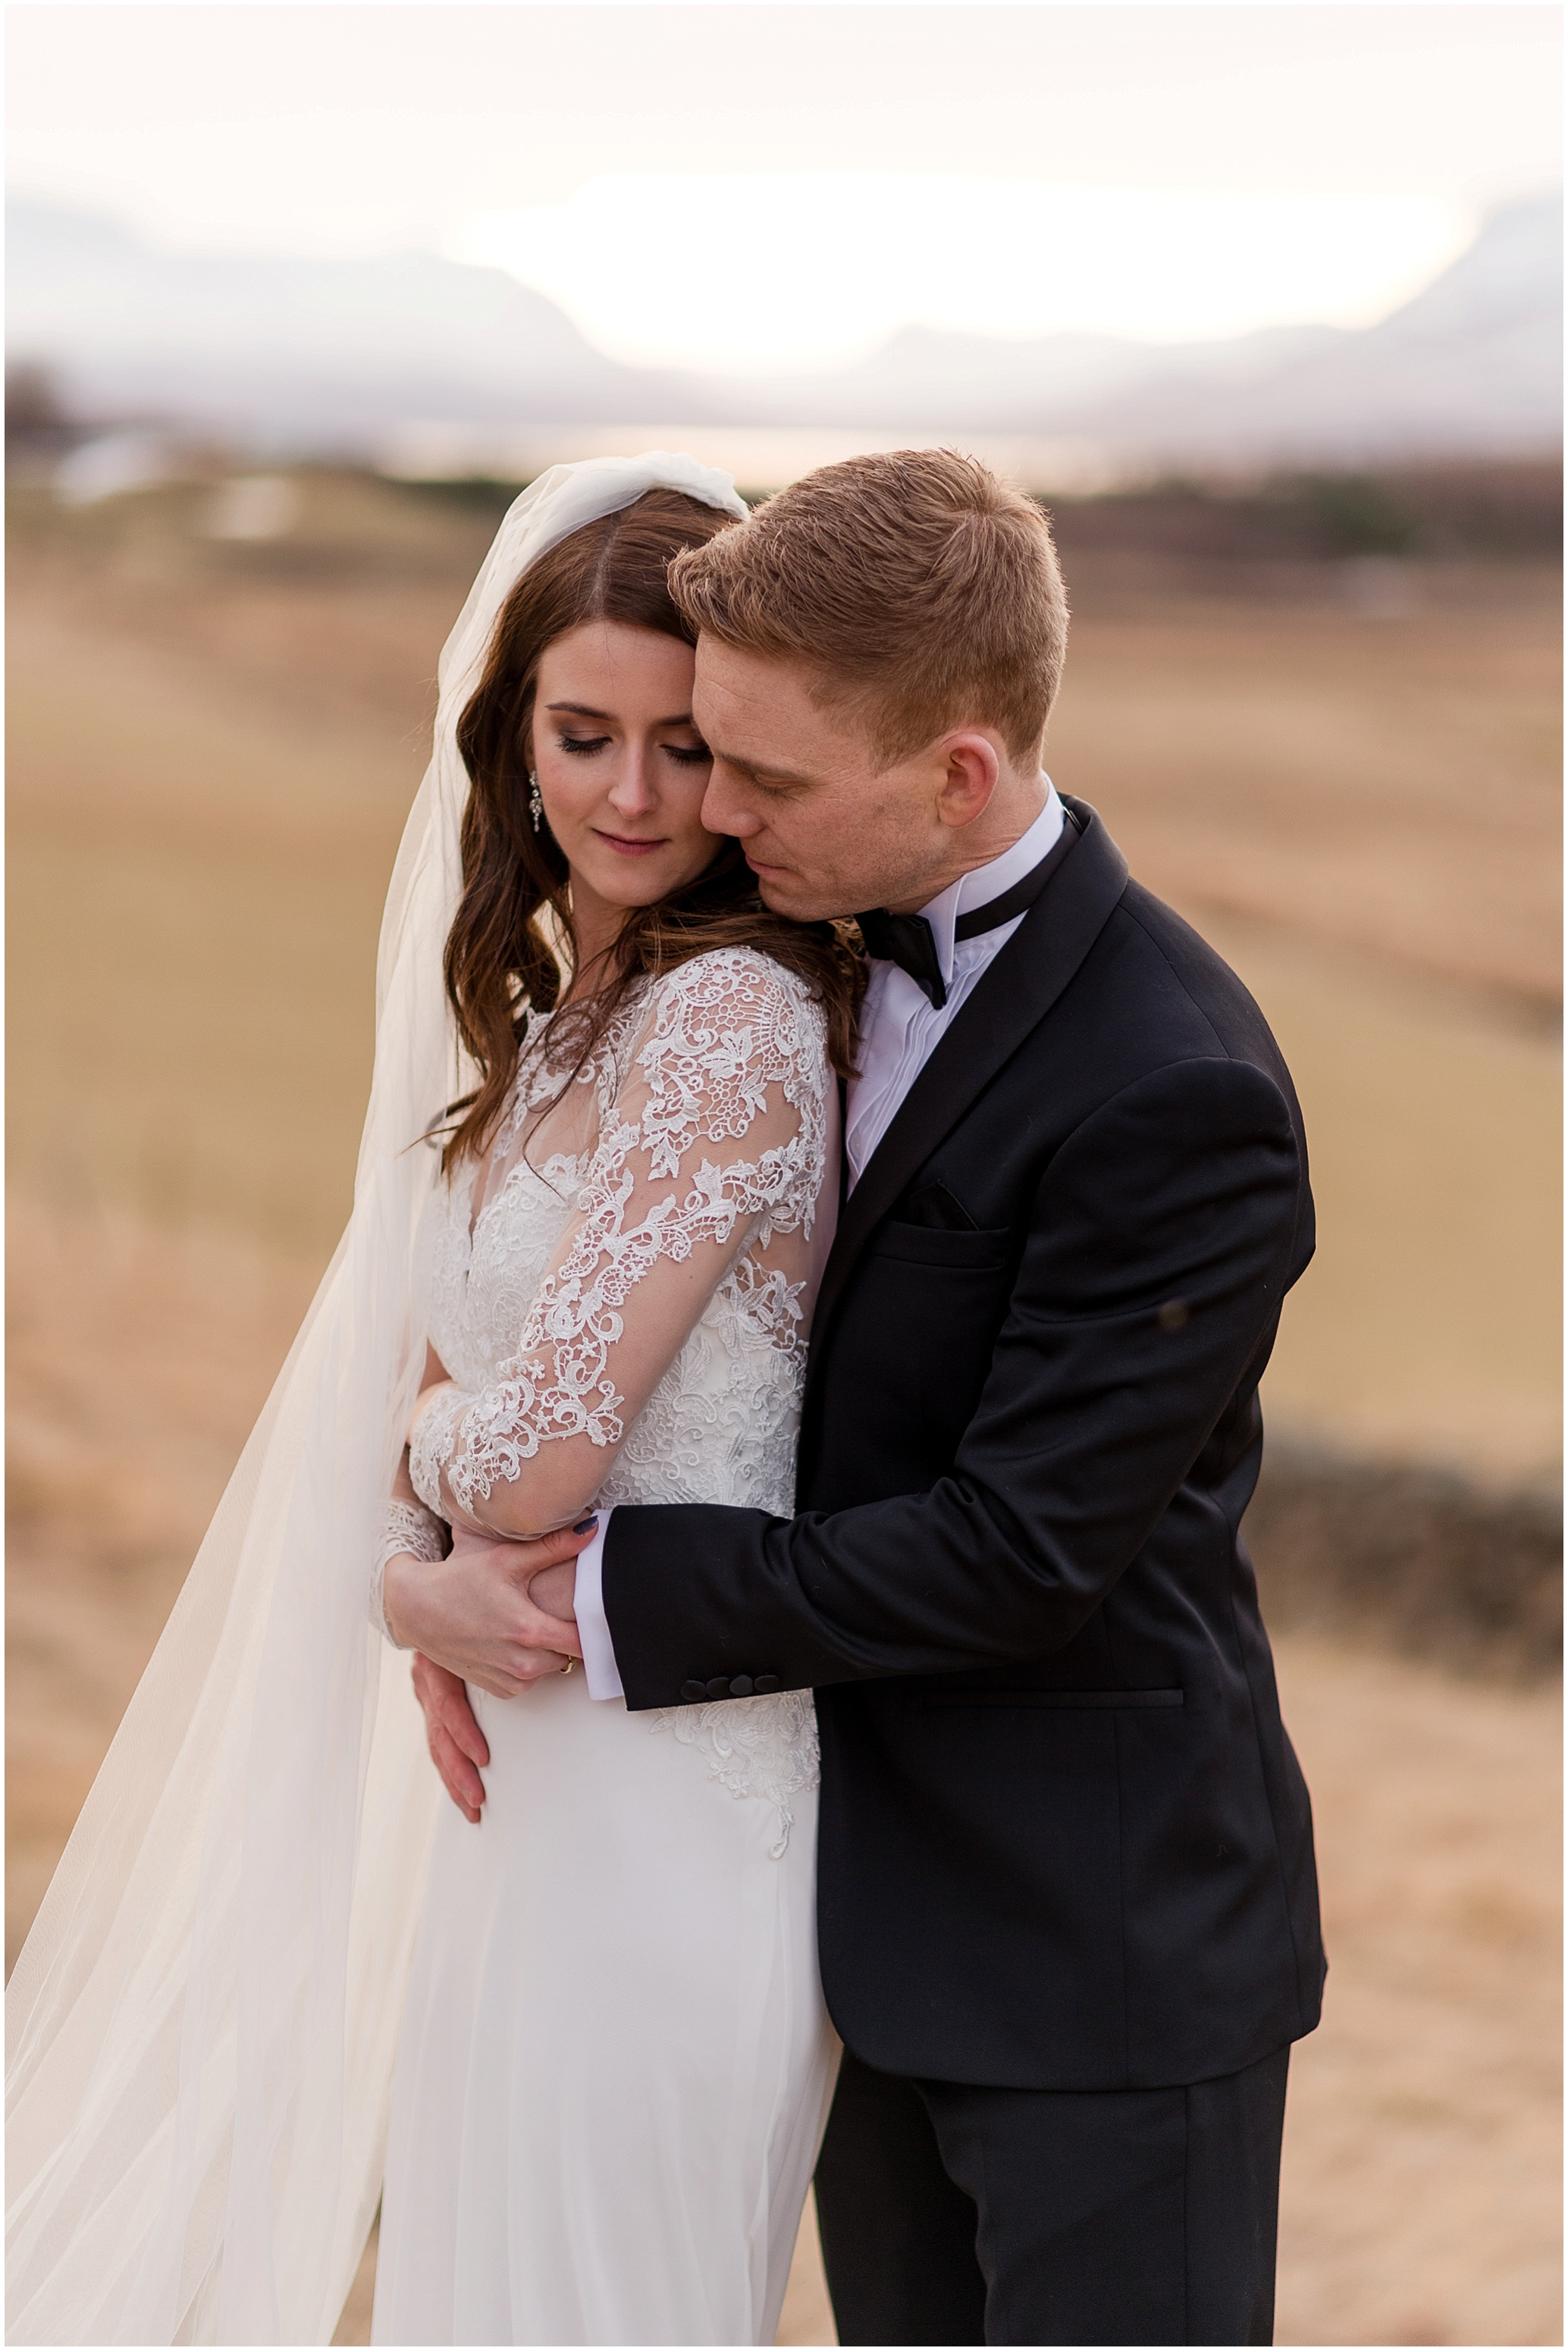 Hannah Leigh Photography Akureyri Iceland Wedding_3196.jpg